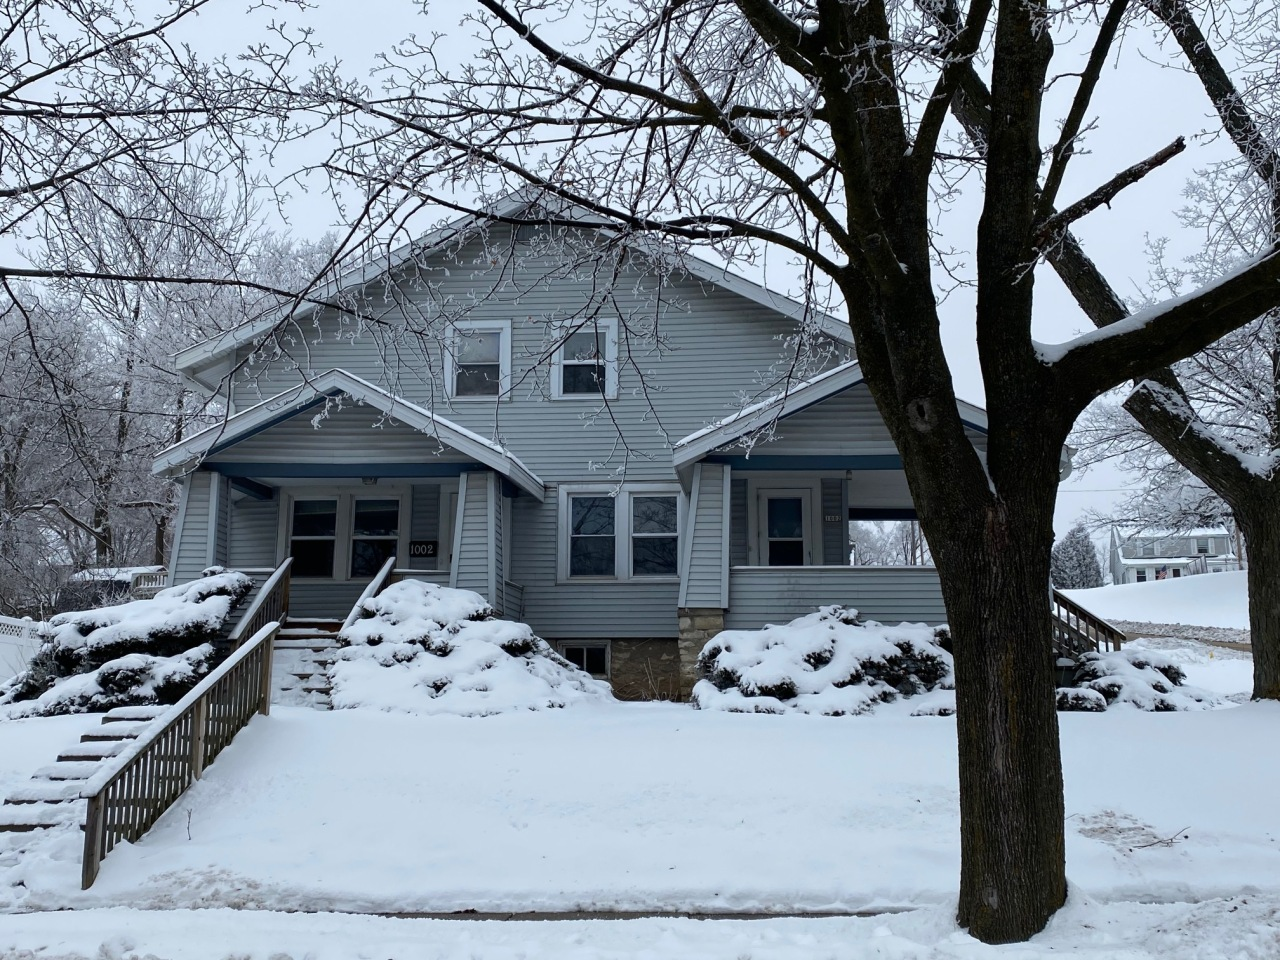 1002 Motor Ave, Waukesha, Wisconsin 53188, 3 Bedrooms Bedrooms, 6 Rooms Rooms,1 BathroomBathrooms,Two-Family,For Sale,Motor Ave,1,1722945